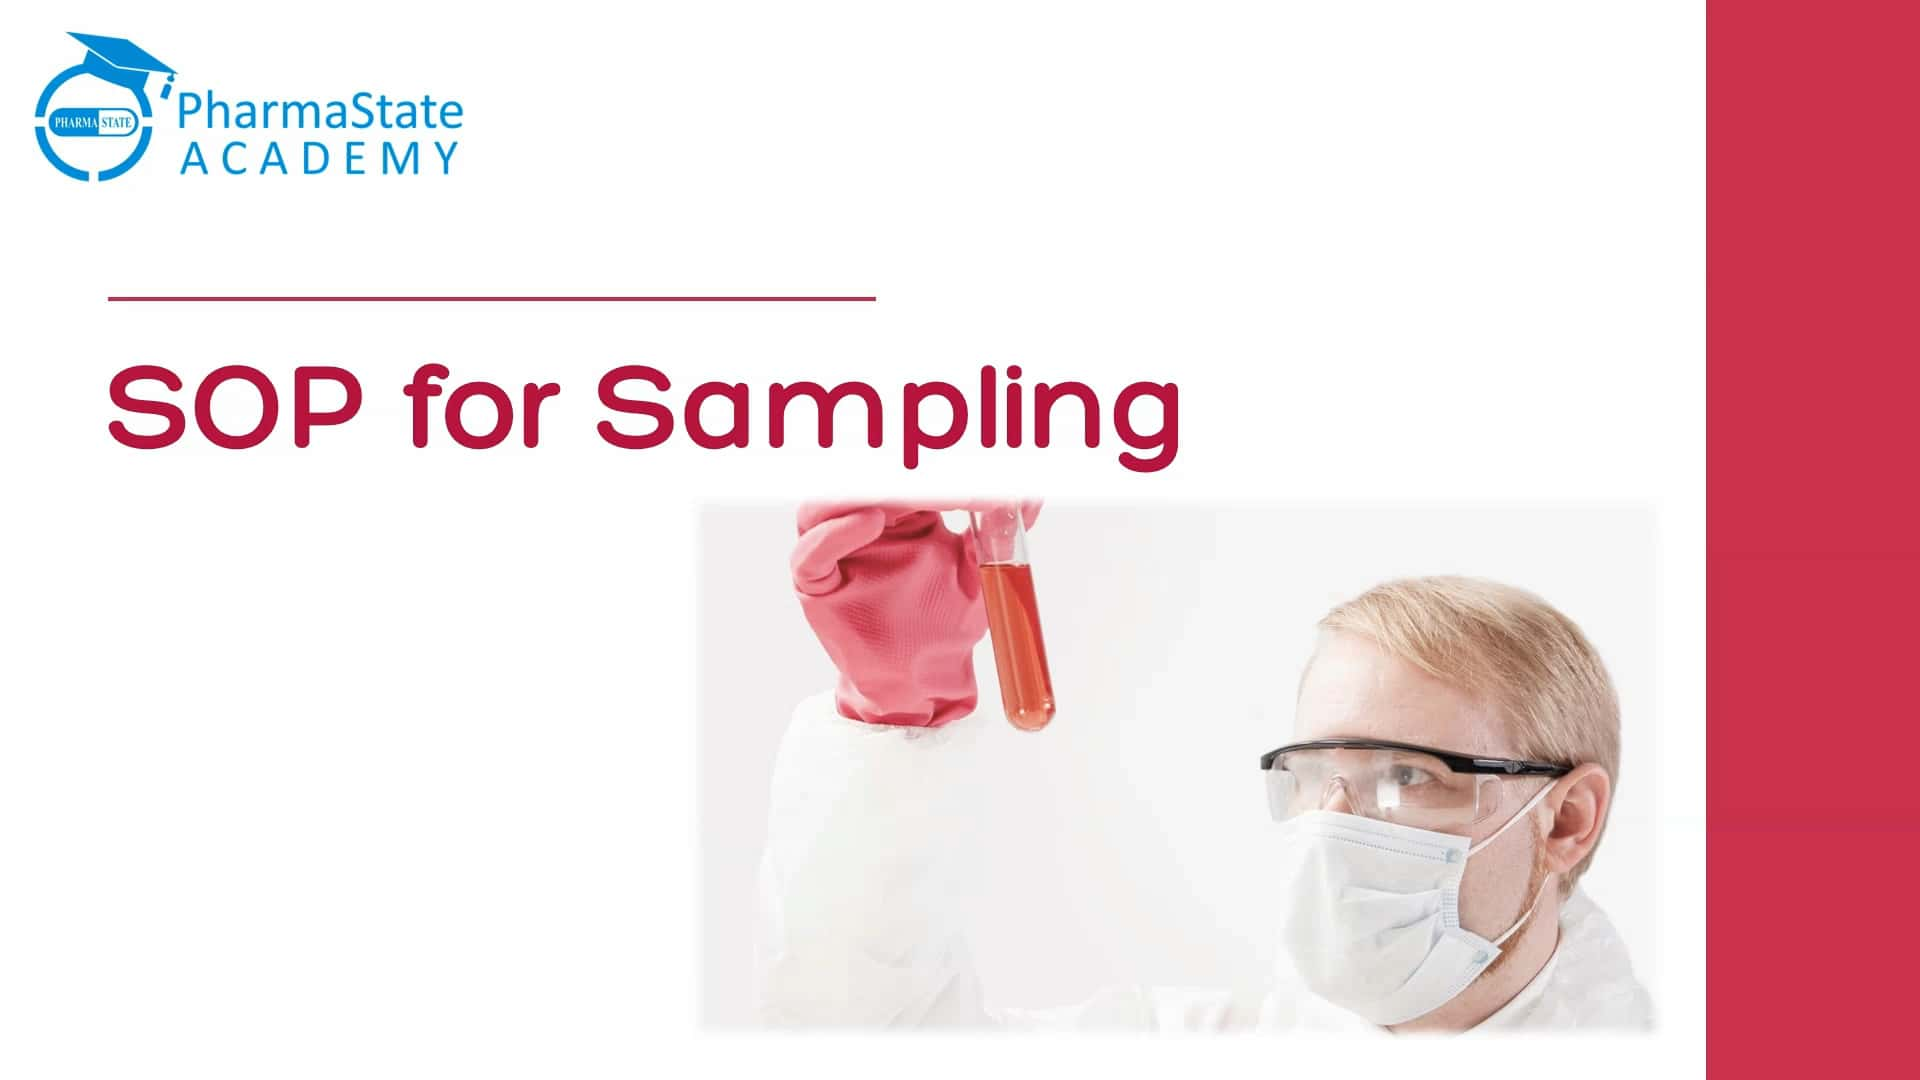 Standard Operating Procedure for Sampling